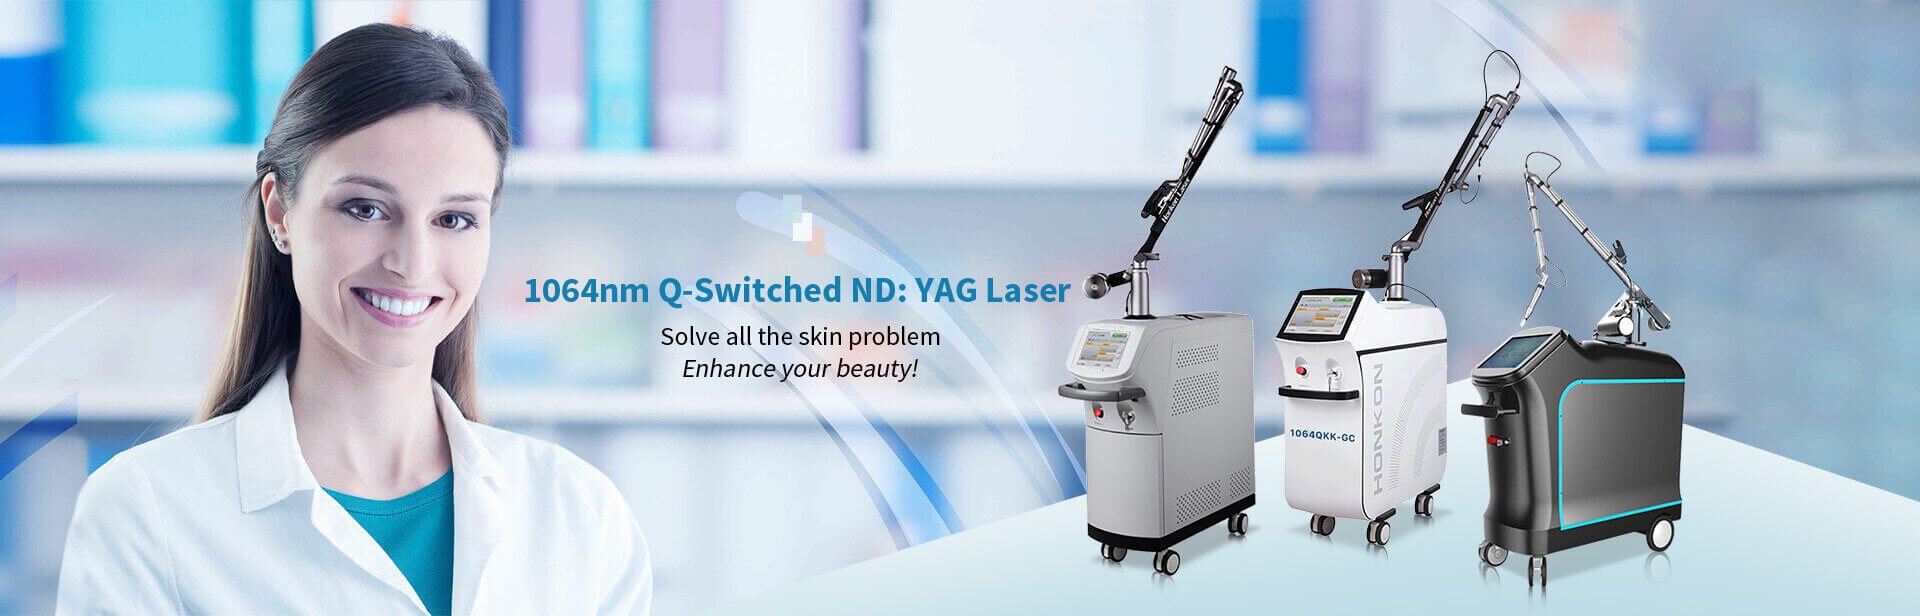 1064nm Q-Switched ND:YAG Laser